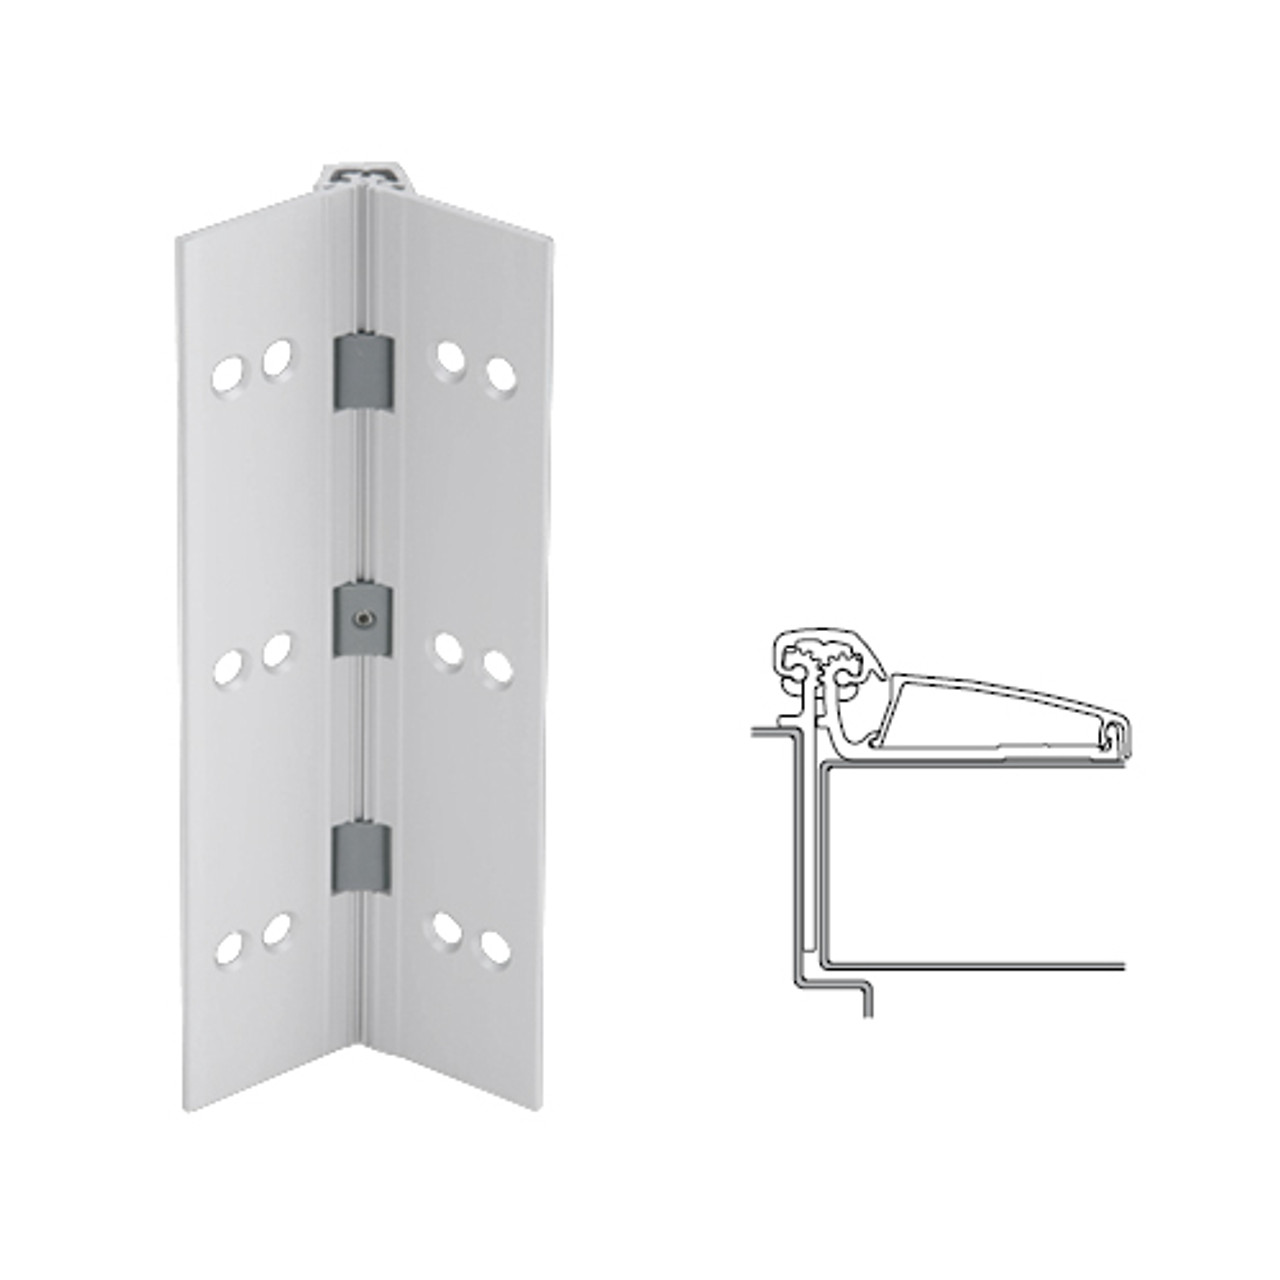 046XY-US28-120-WD IVES Adjustable Half Surface Continuous Geared Hinges with Wood Screws in Satin Aluminum